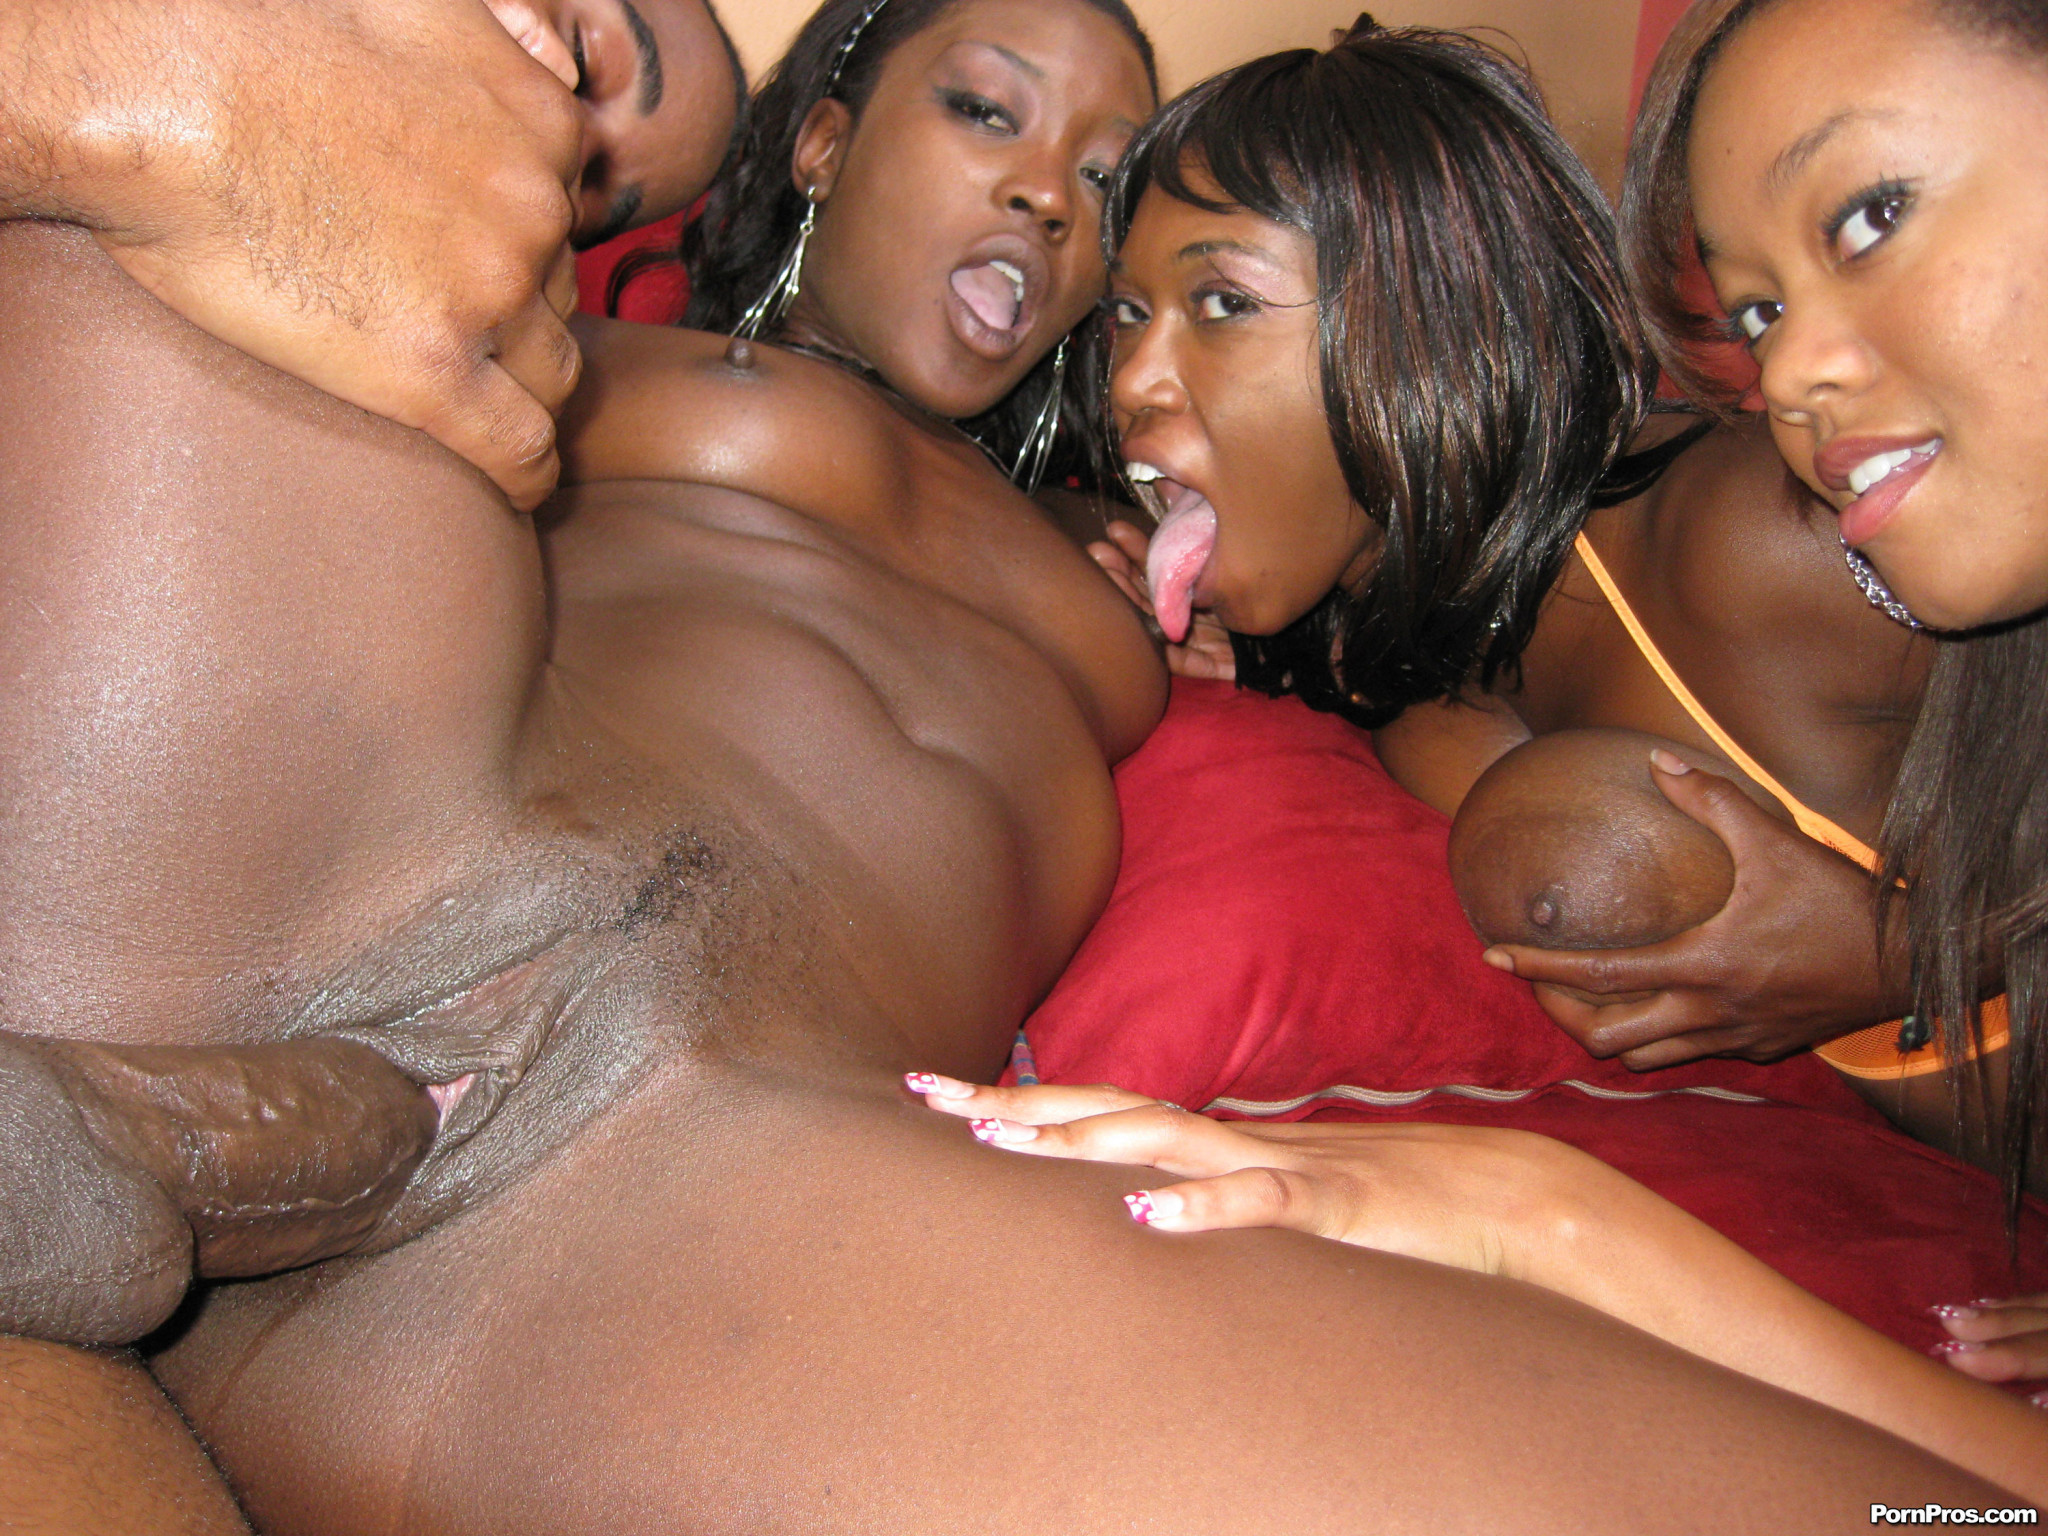 Very bad black girls and a white slave girl